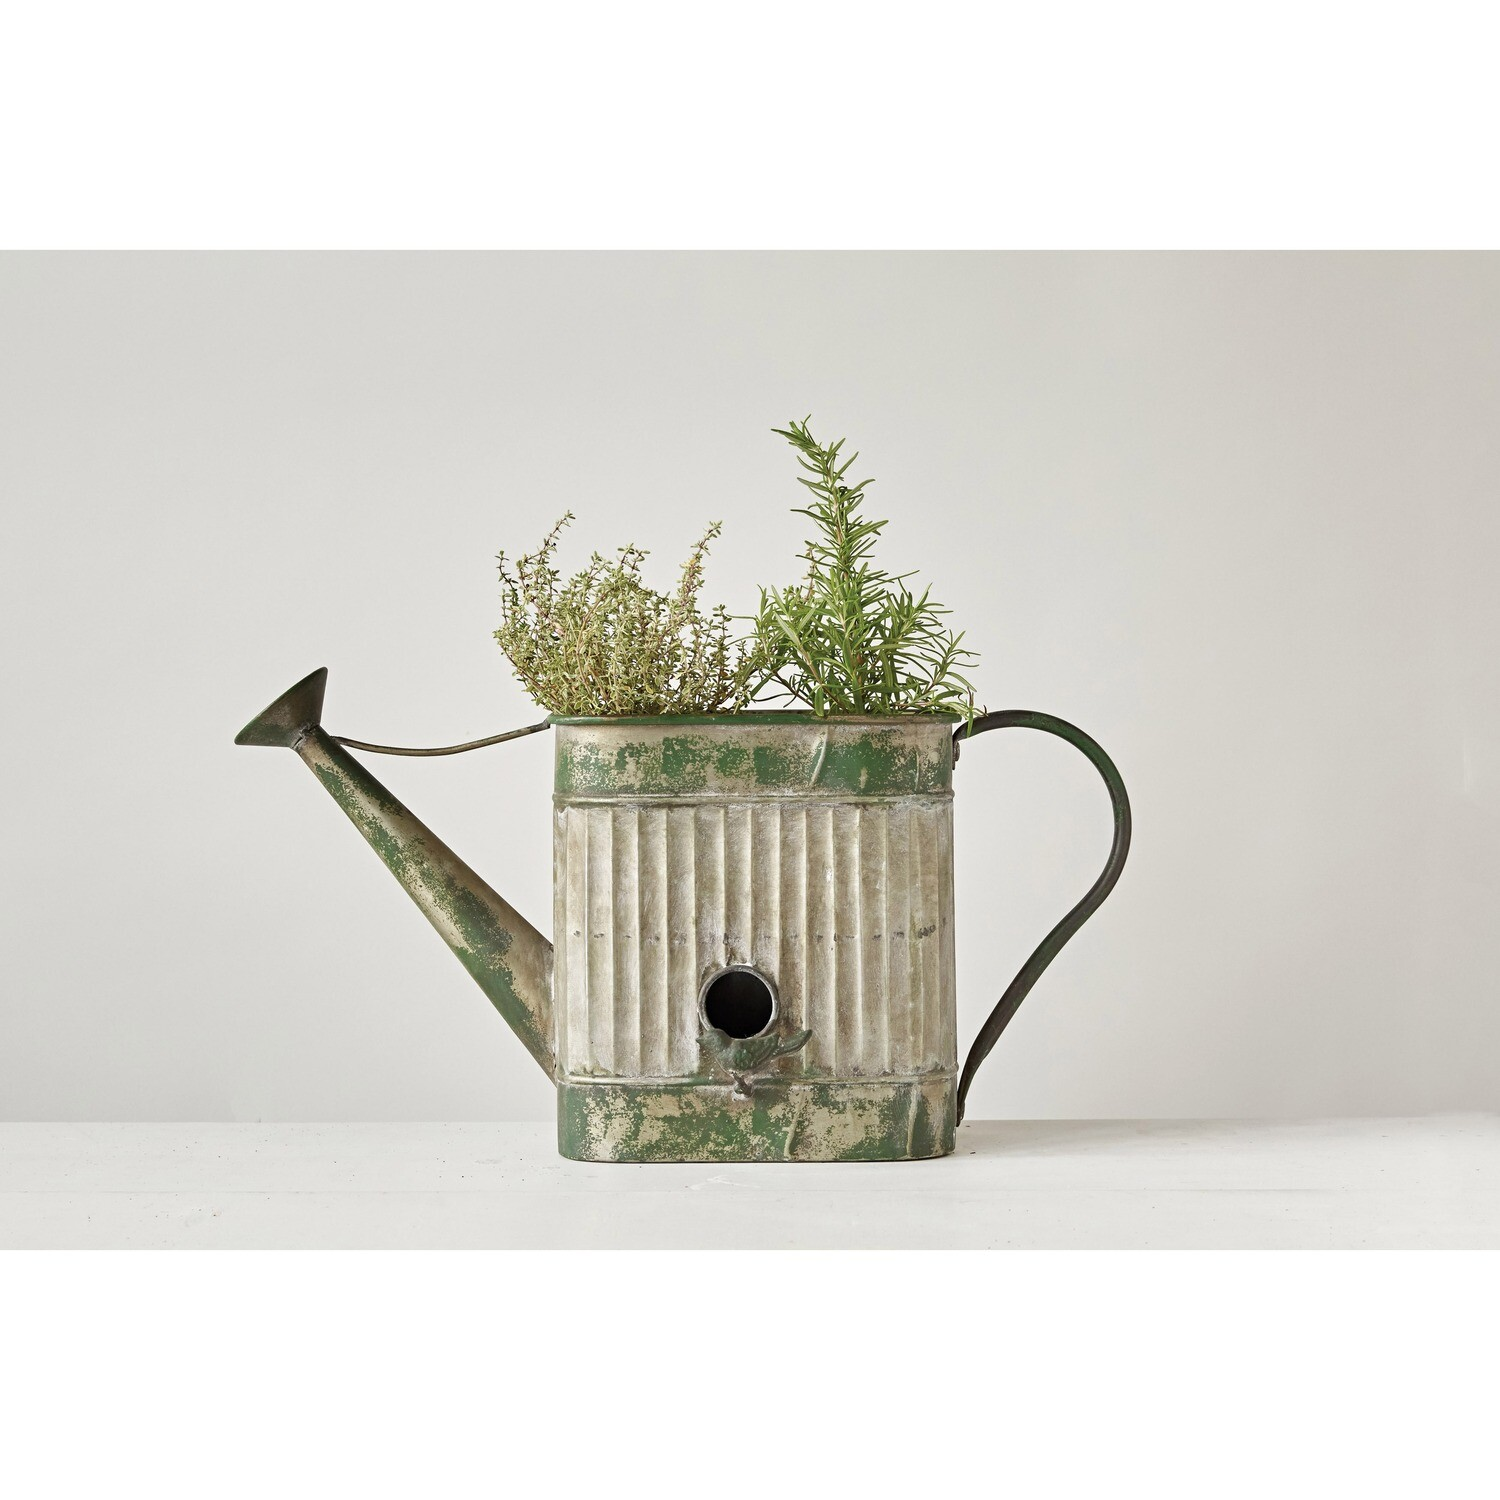 Birdhouse/Watering Can Planter